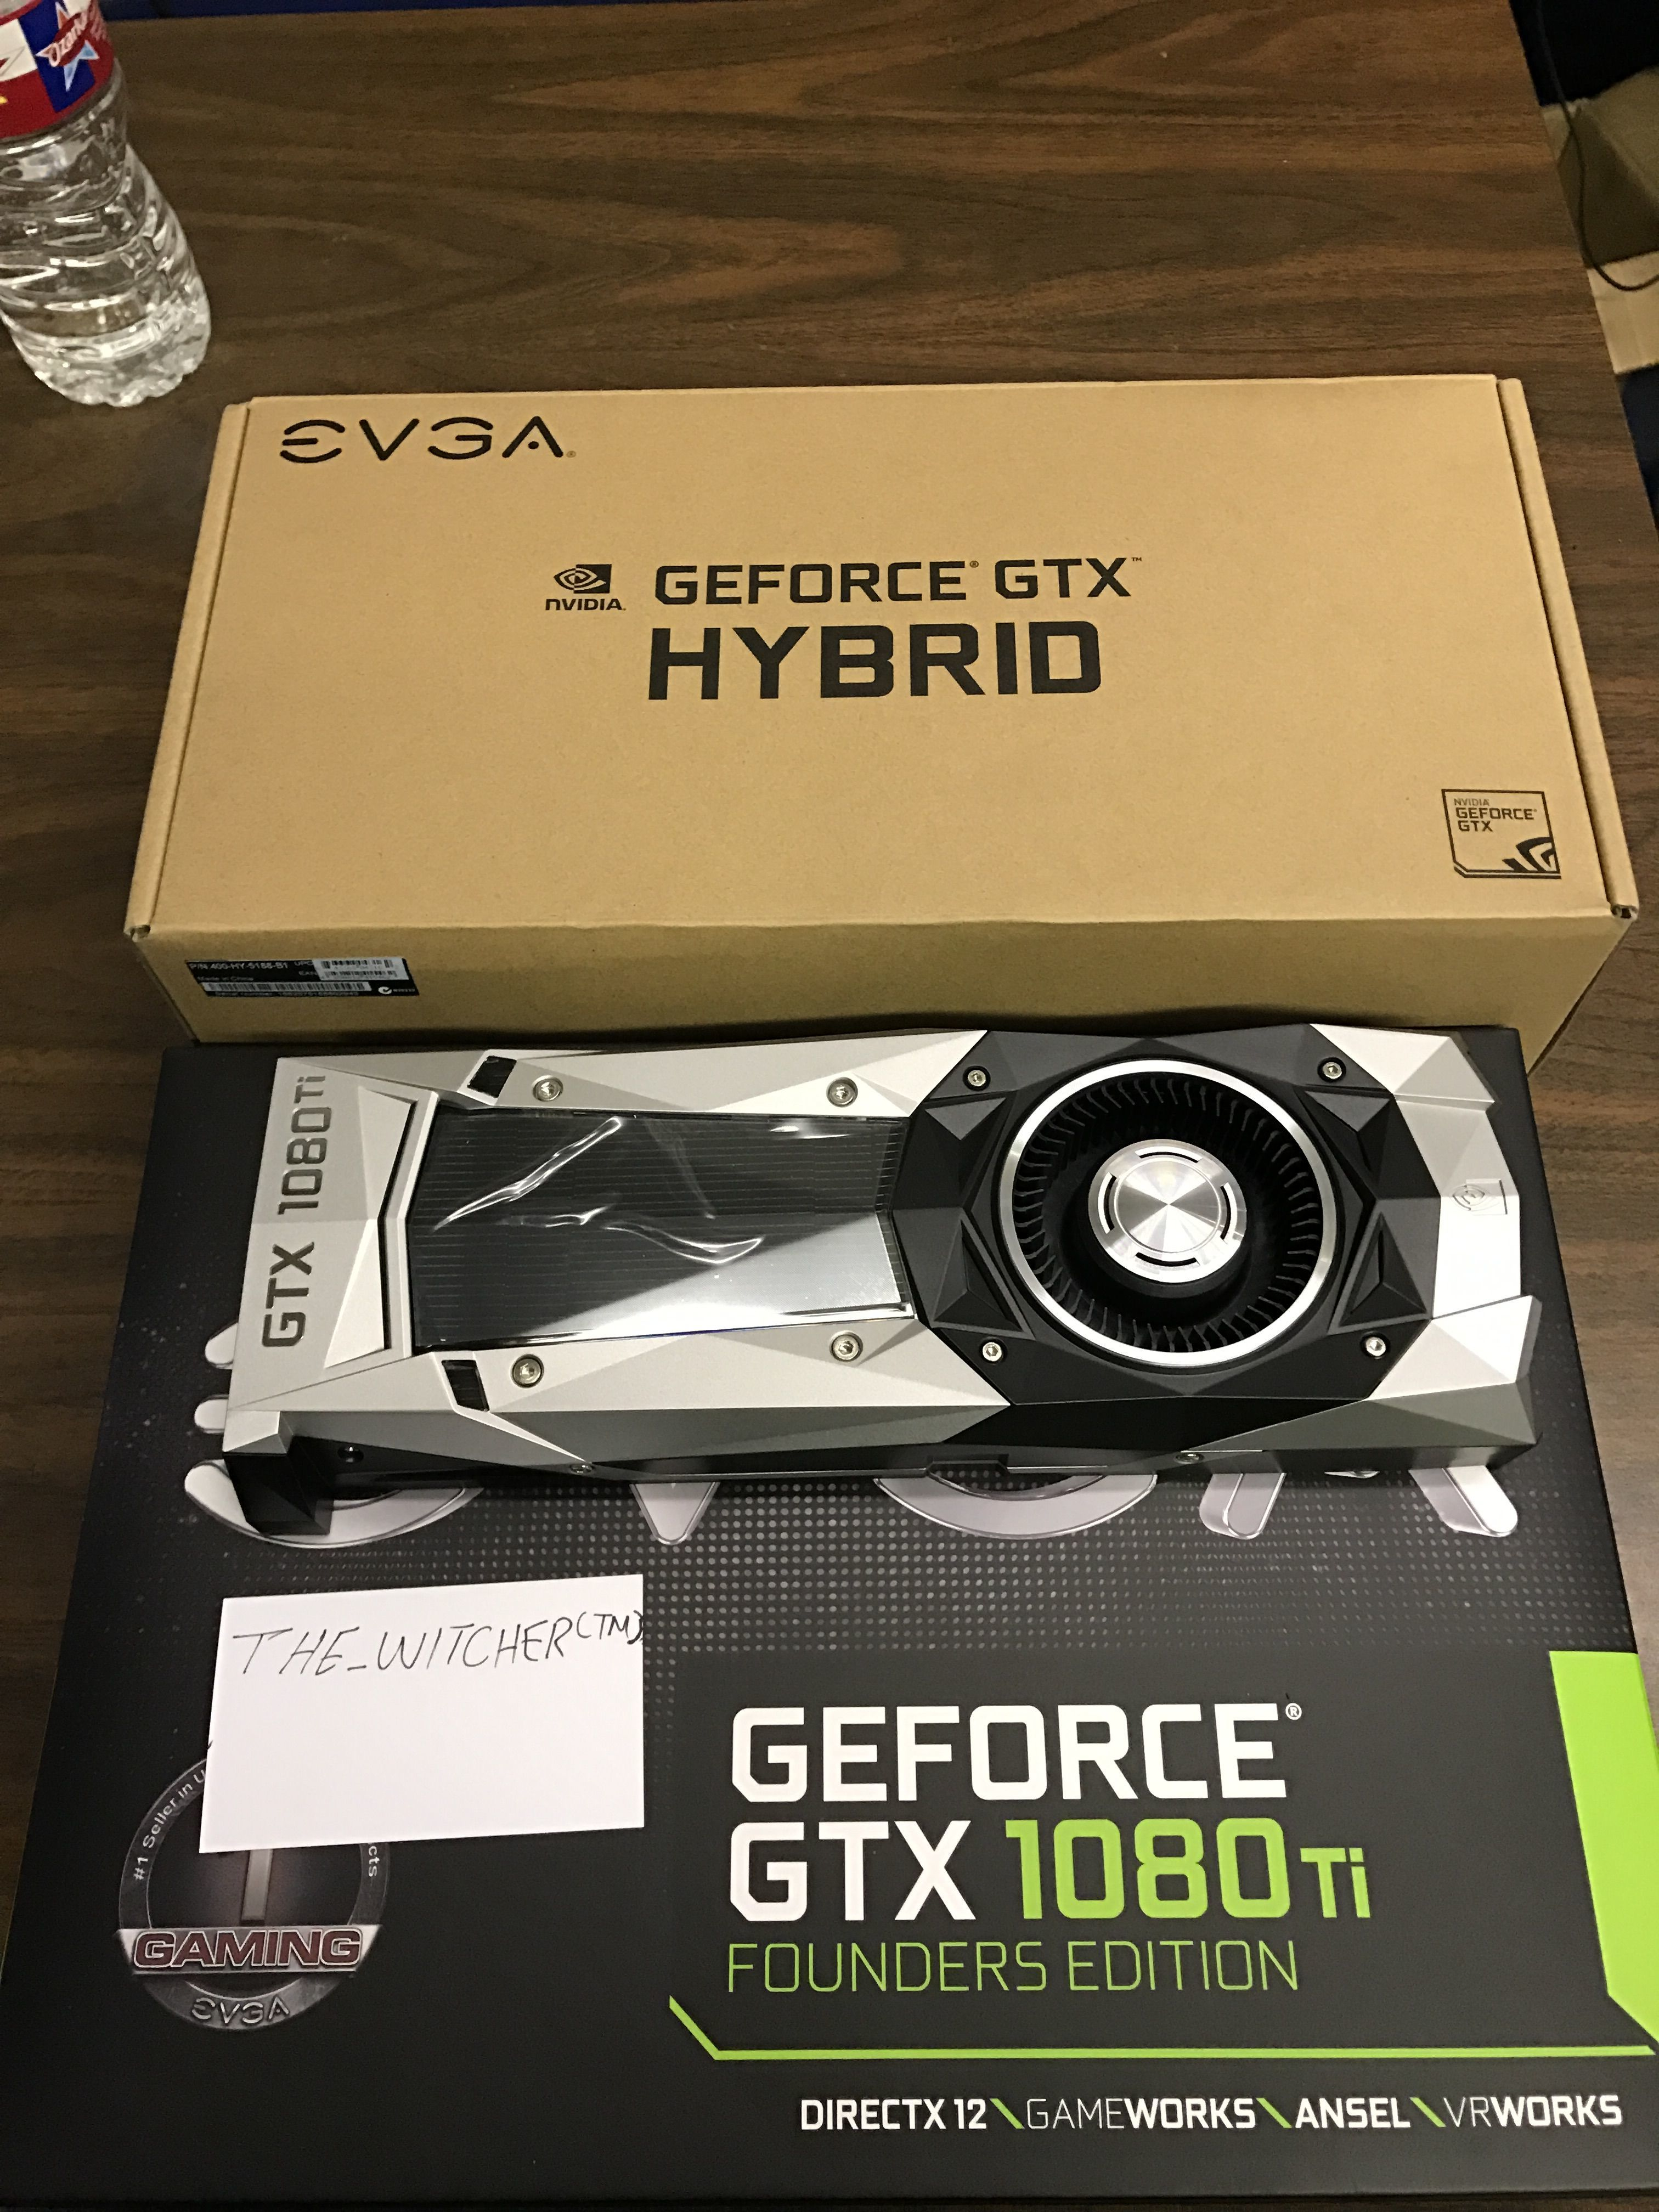 Official] NVIDIA GTX 1080 Ti Owner's Club - Page 173